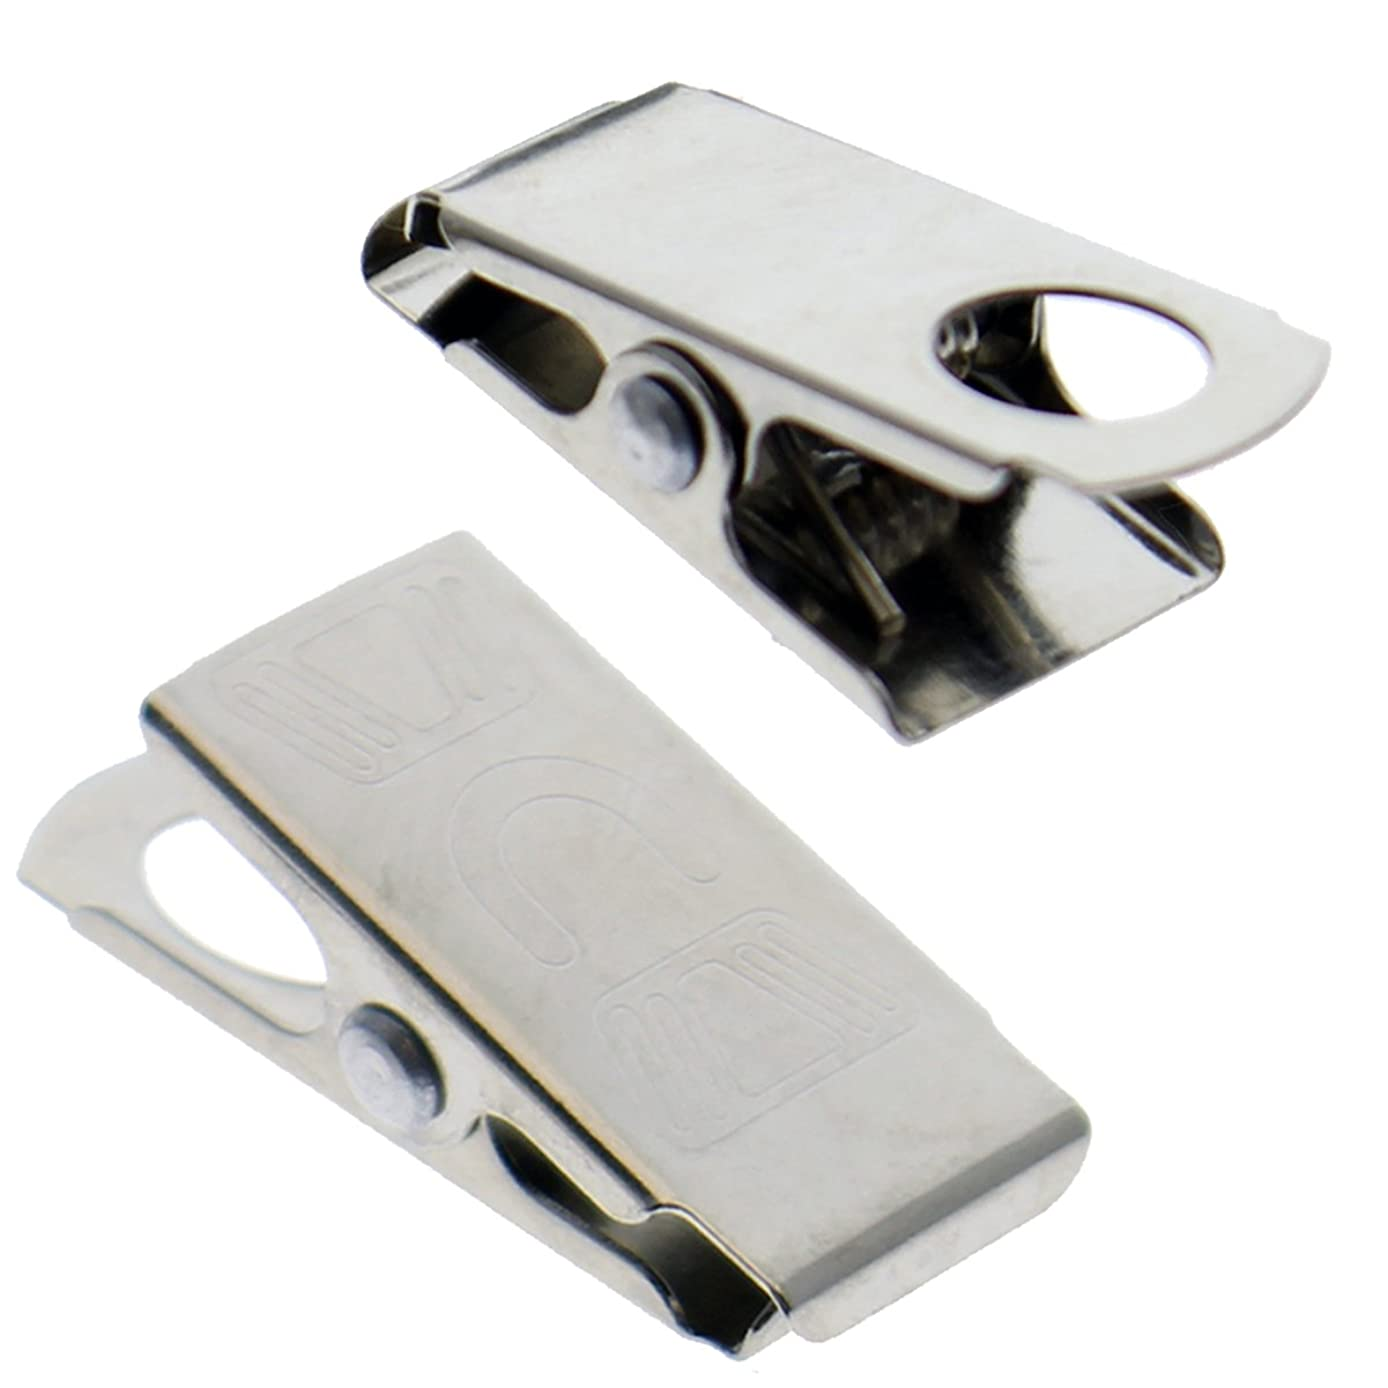 50 Pack - Small 1 Inch Bulldog Clasp Clips for Making Lanyards Arts & Crafts - Alligator Style Metal ID Clip Findings - DIY Supplies for ID Badges, Eyeglass Retainers & More by Specialist ID